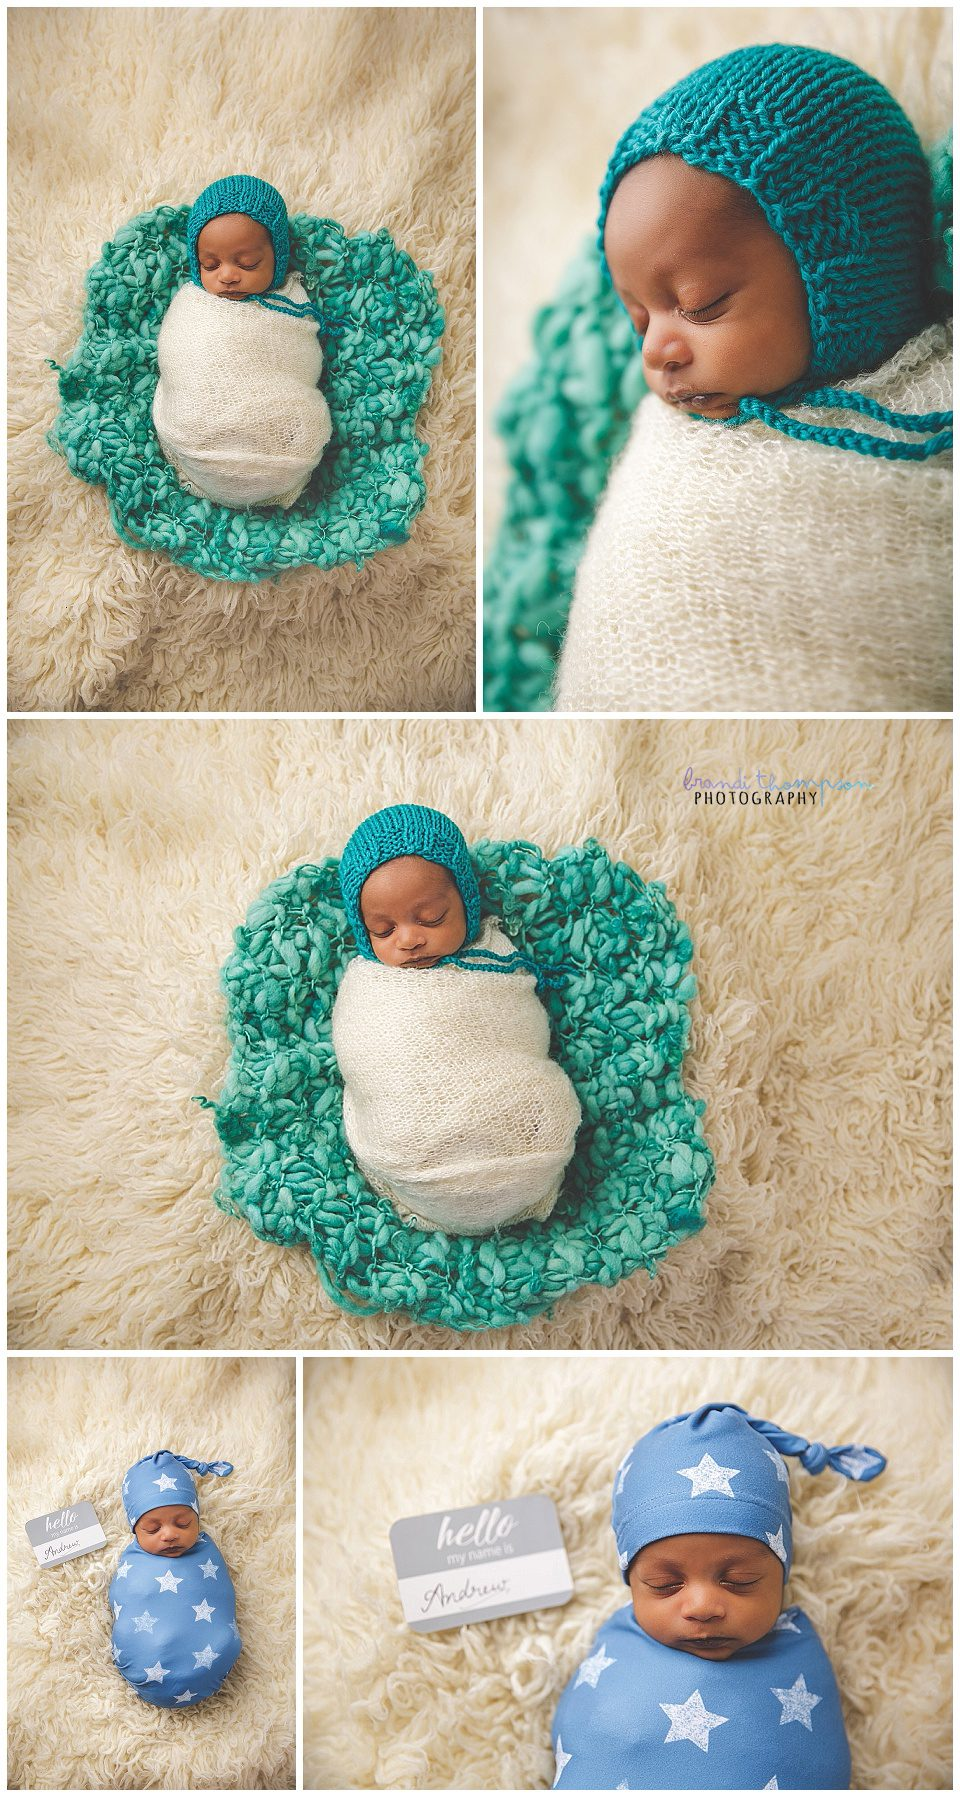 newborn baby on cream rug in teal and white, and blue with stars